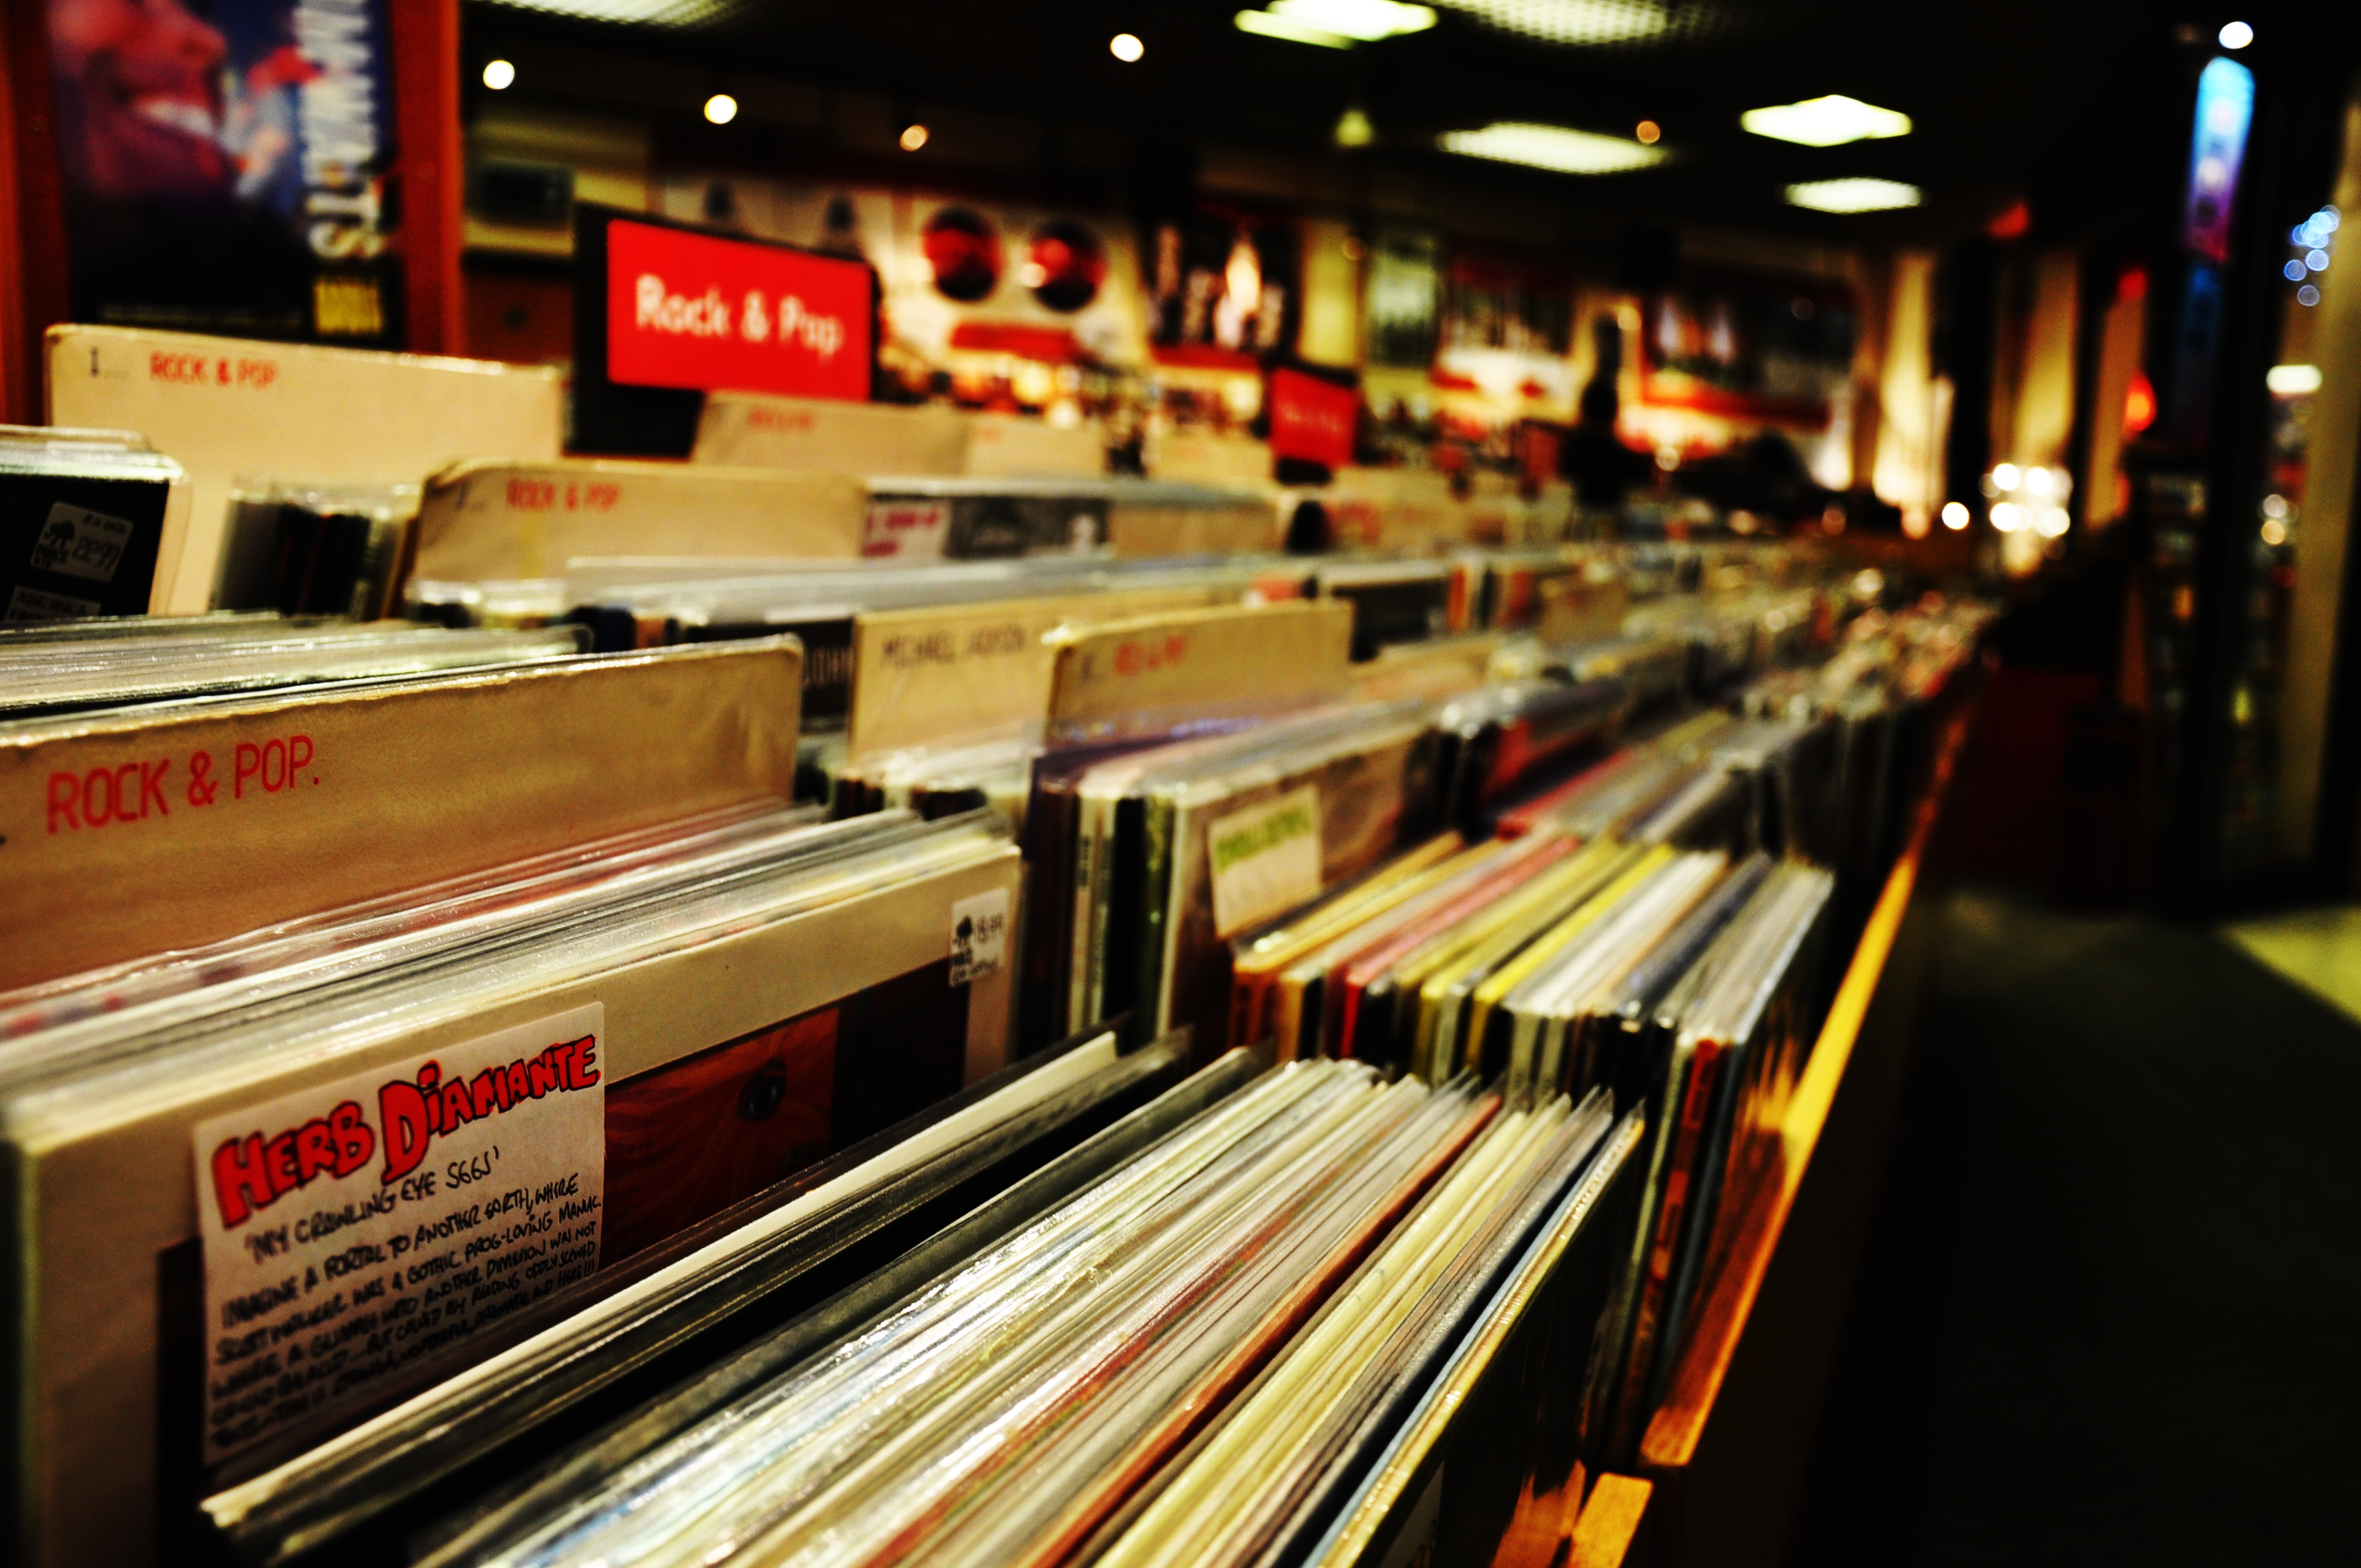 show you where to easily find Rare CDs or Records